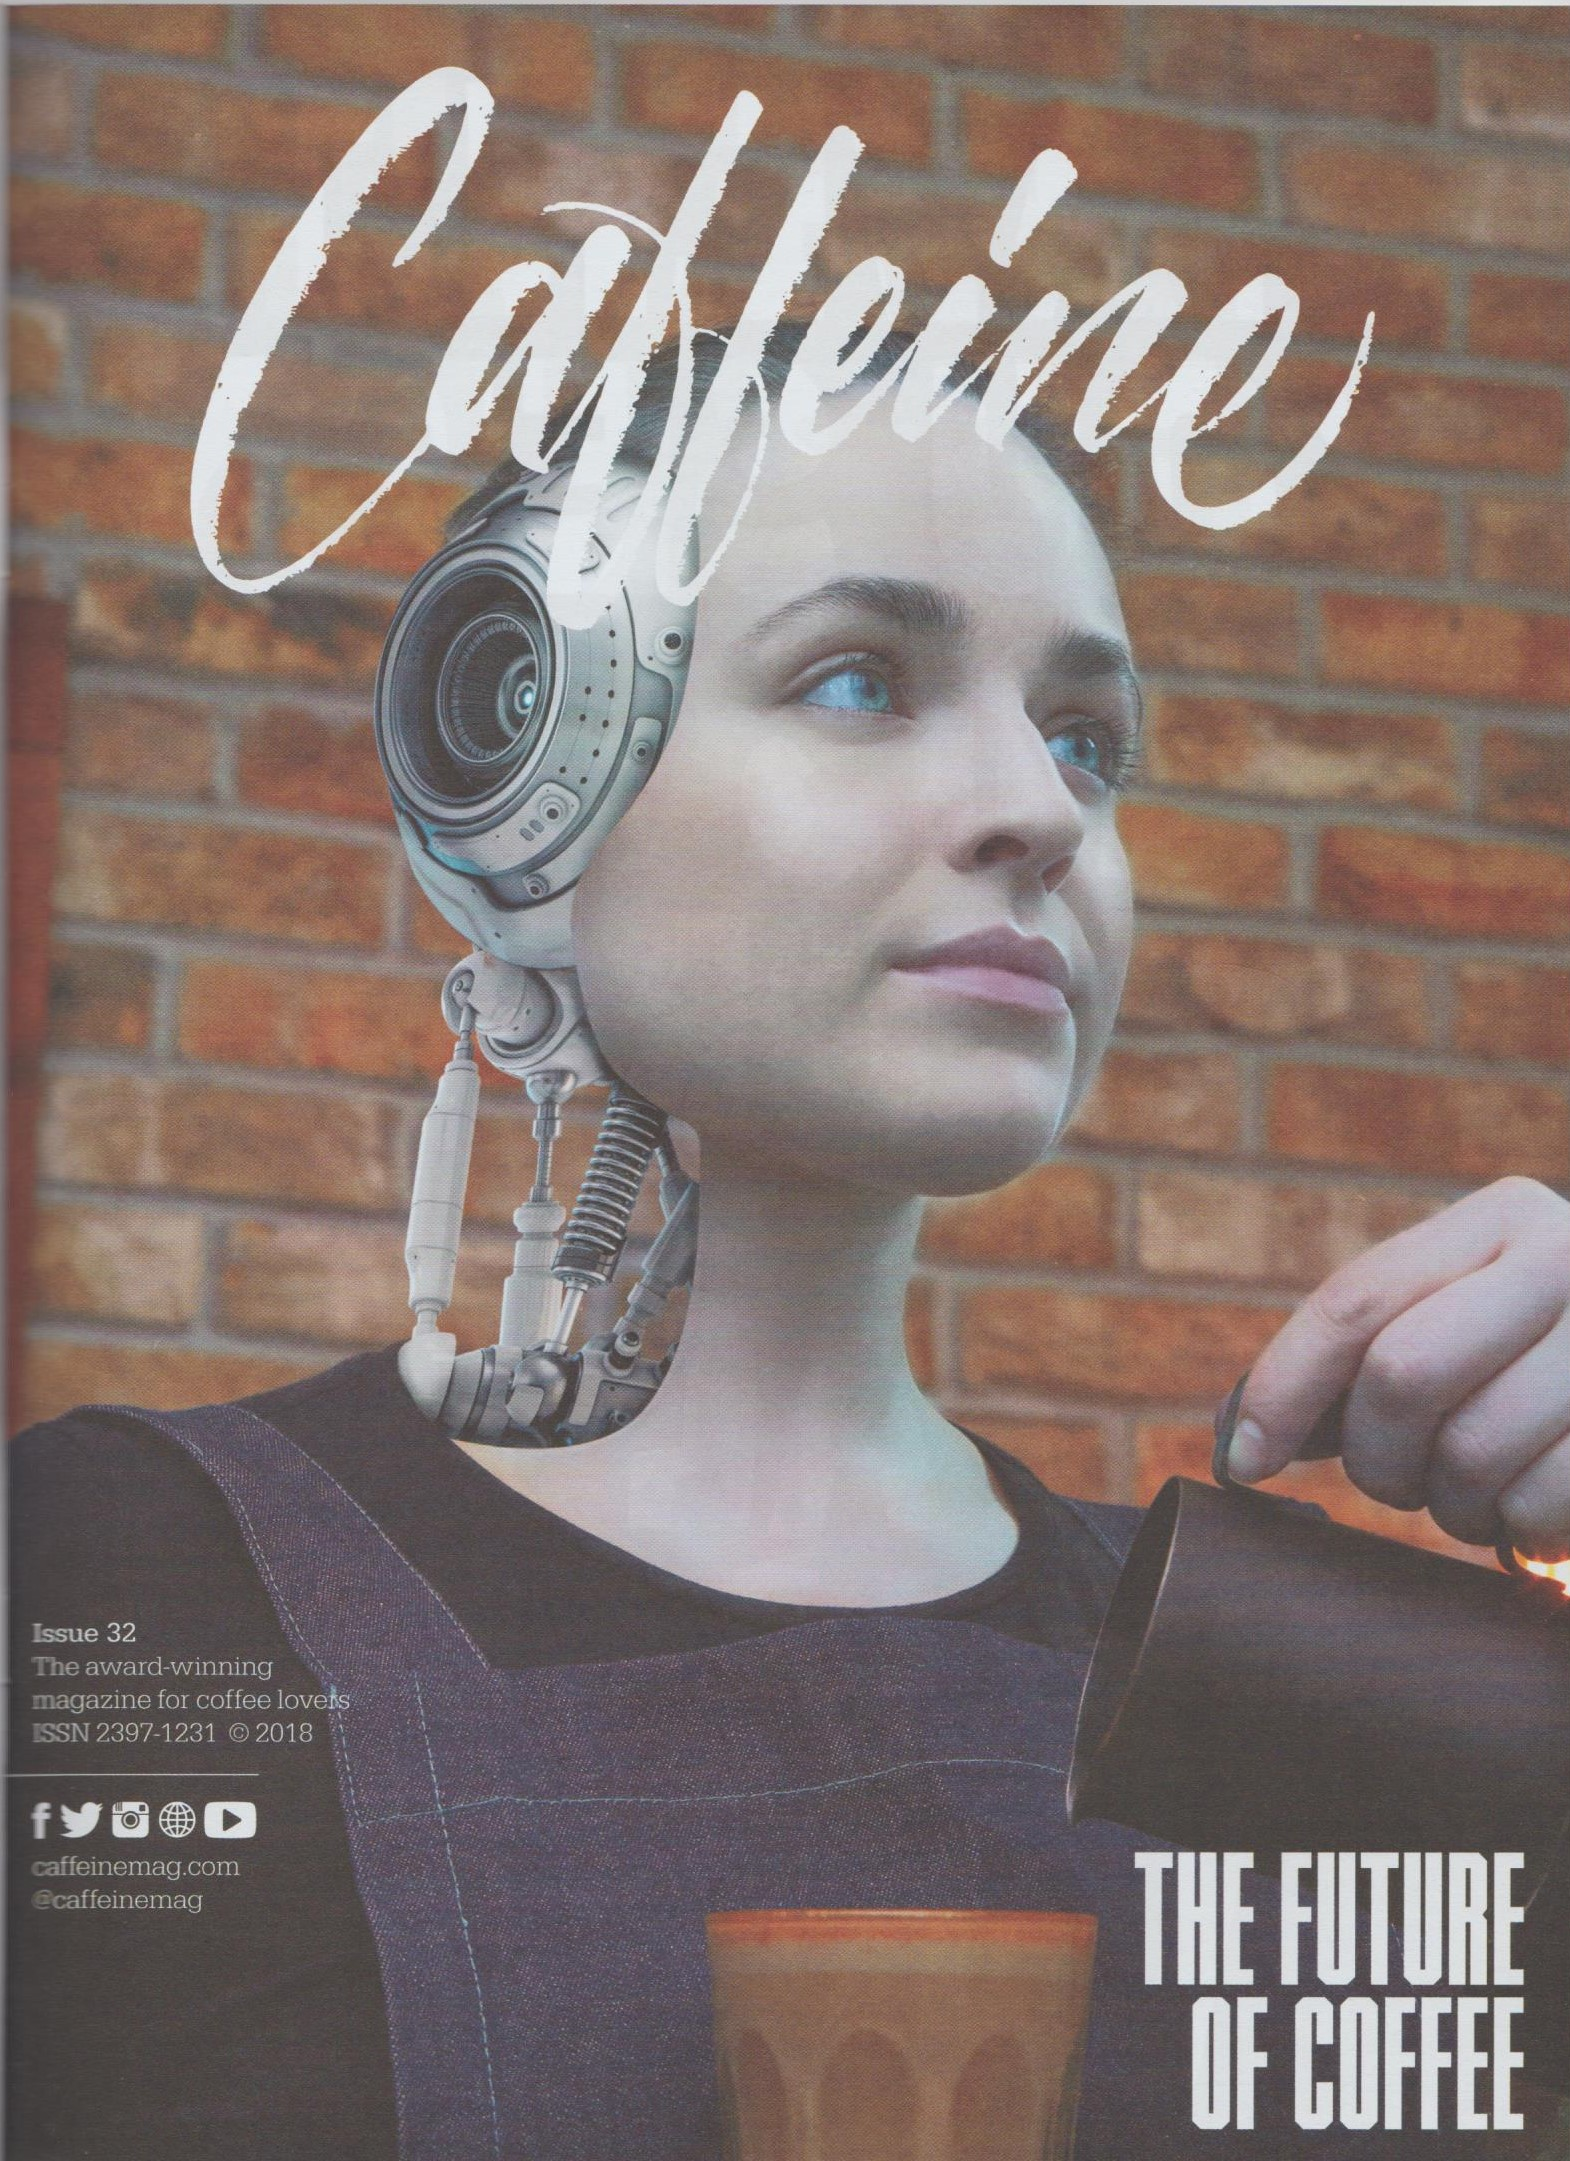 The striking cover of Issue 32 of Caffeine Magazine, which discusses the future of coffee.